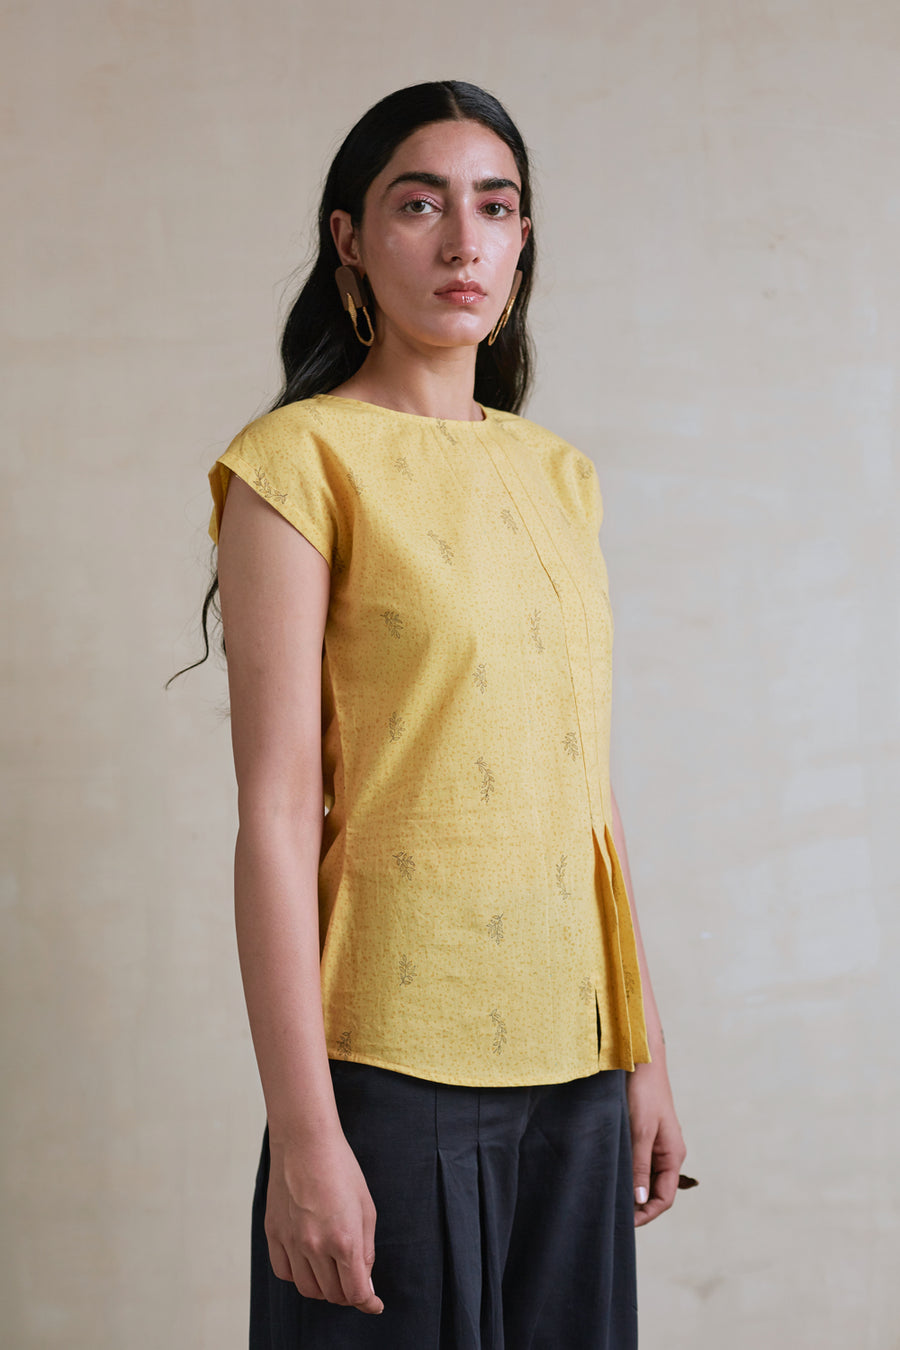 Honey Mustard Pleated Top - Ethical made fashion - onlyethikal